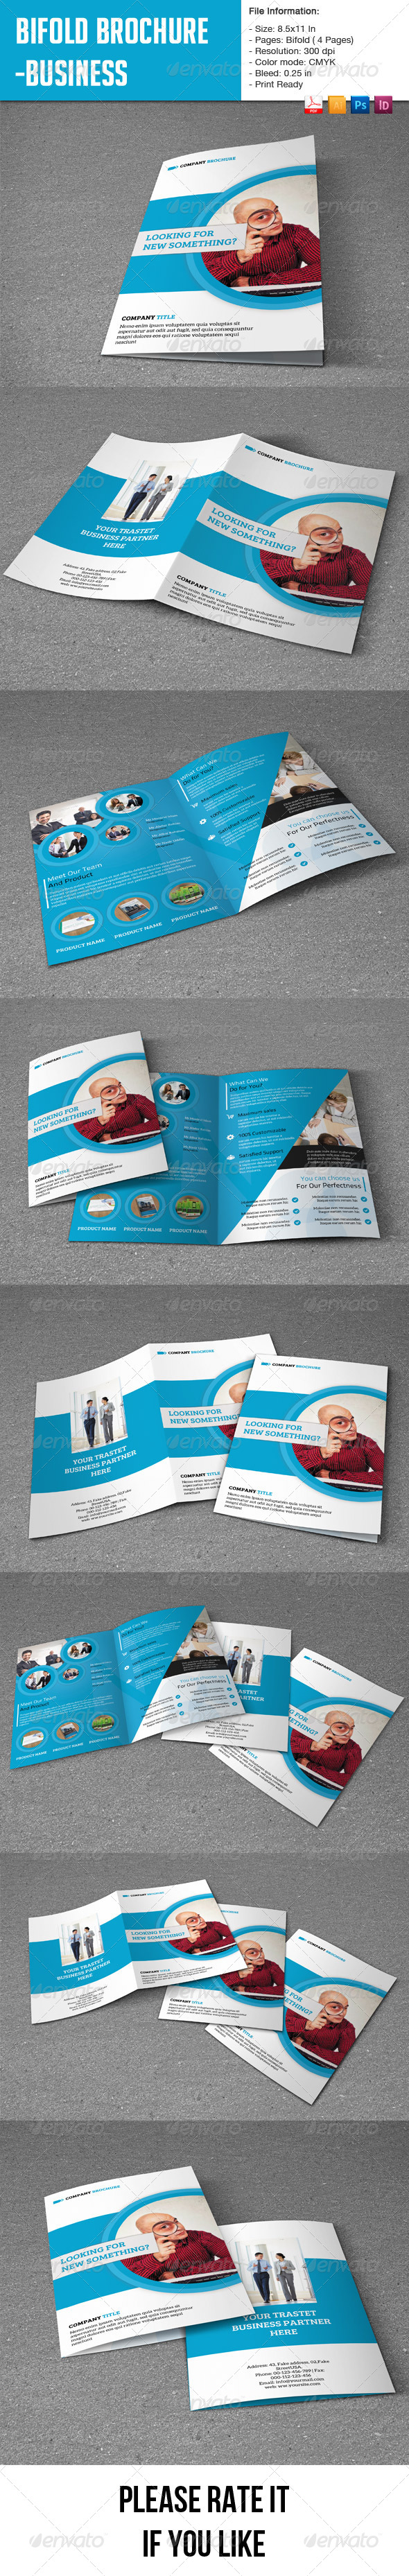 GraphicRiver Flexible Bifold Brochure for Business-4 pages 8678773